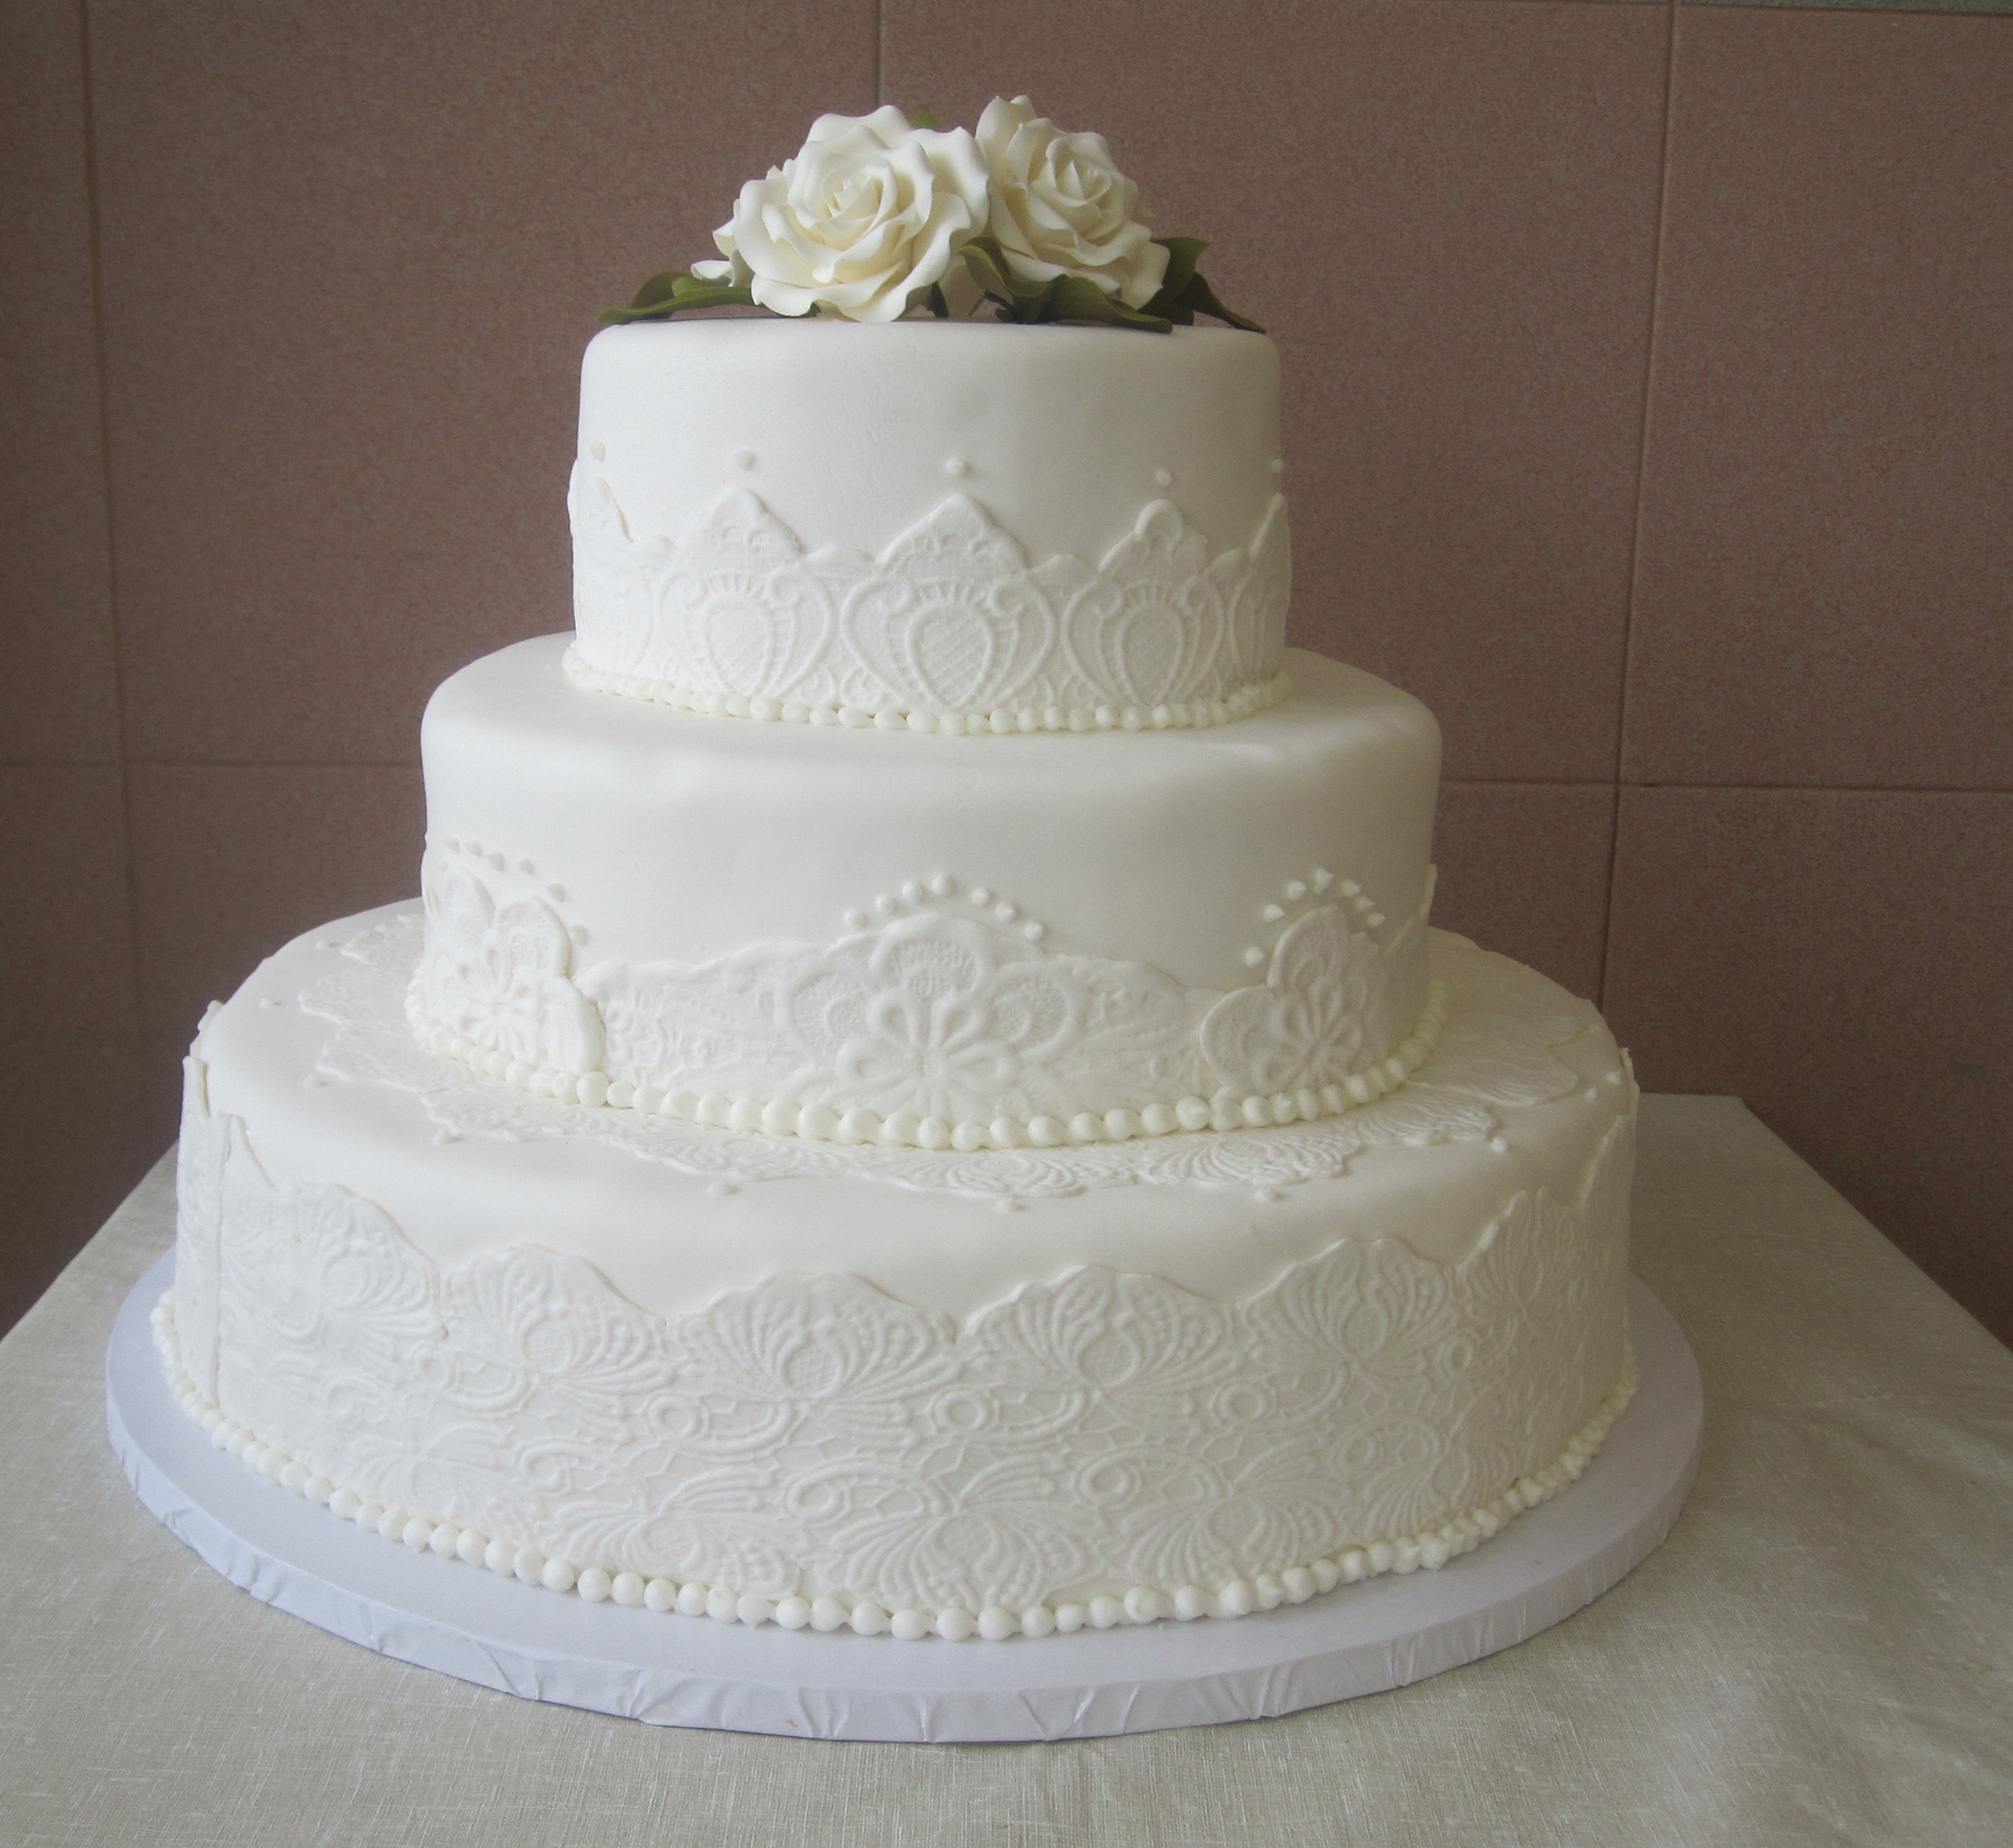 Rolled Fondant with Patterned Banding & Rolled Fondant Roses